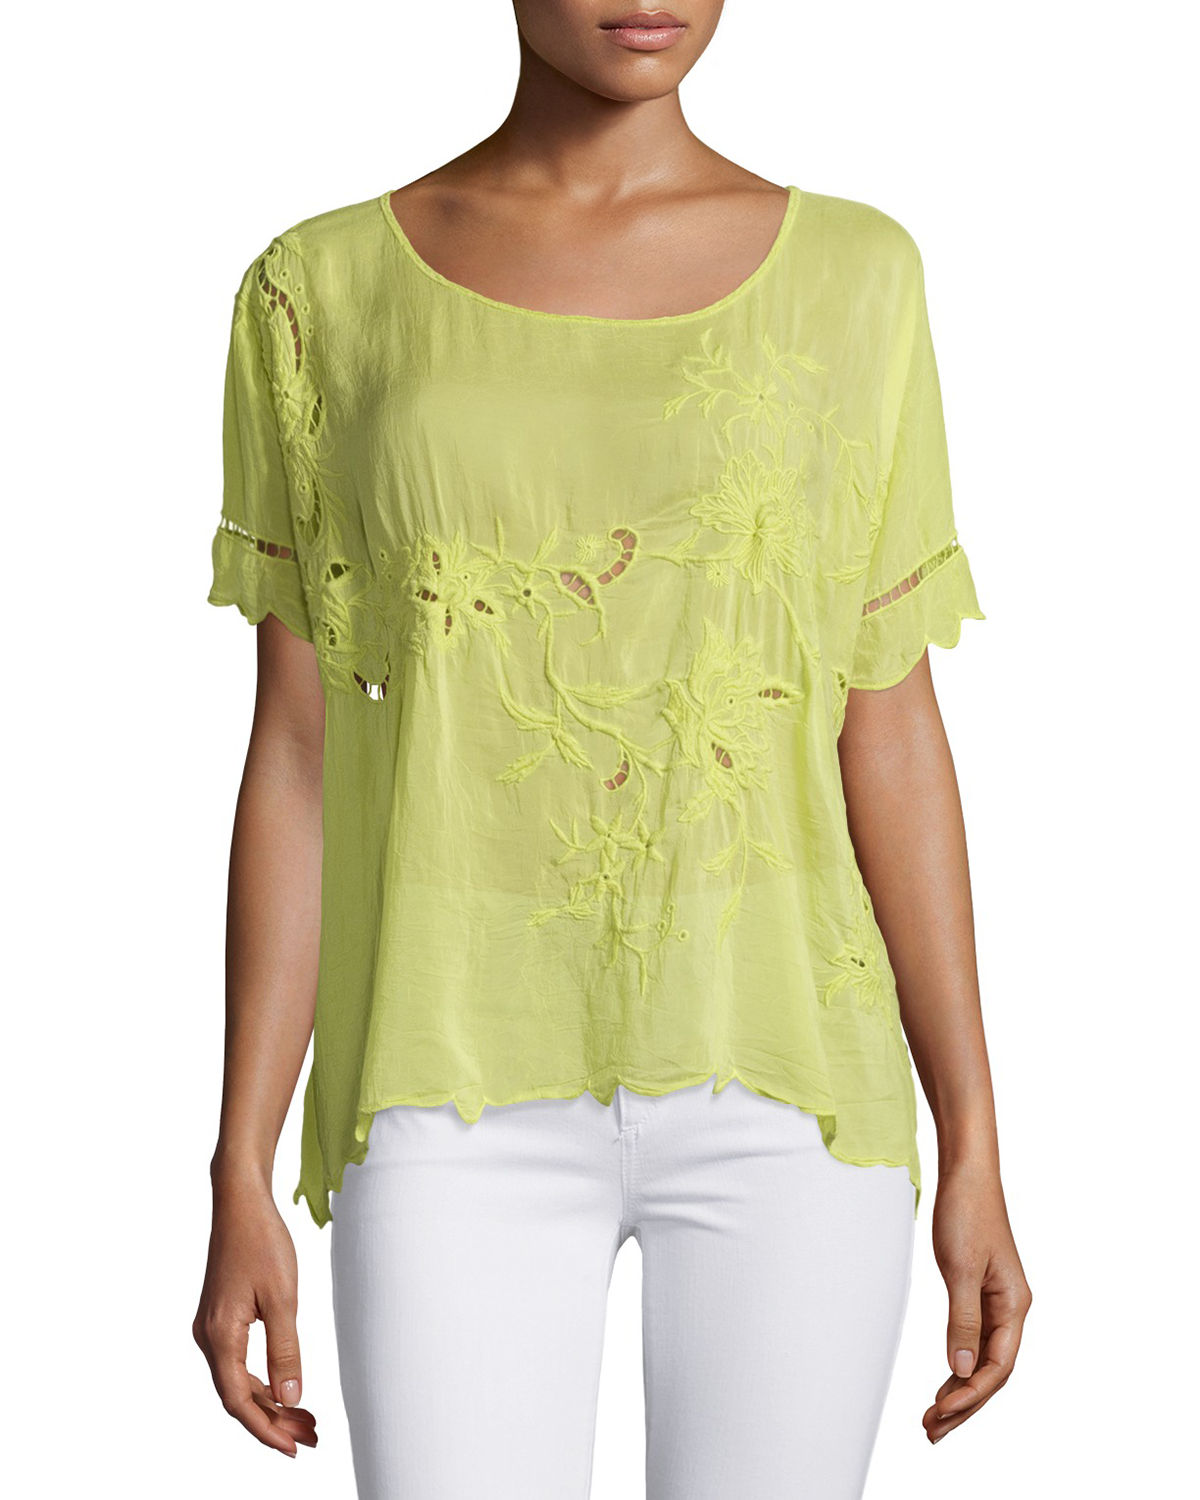 Flo Short-Sleeve Embroidered Top